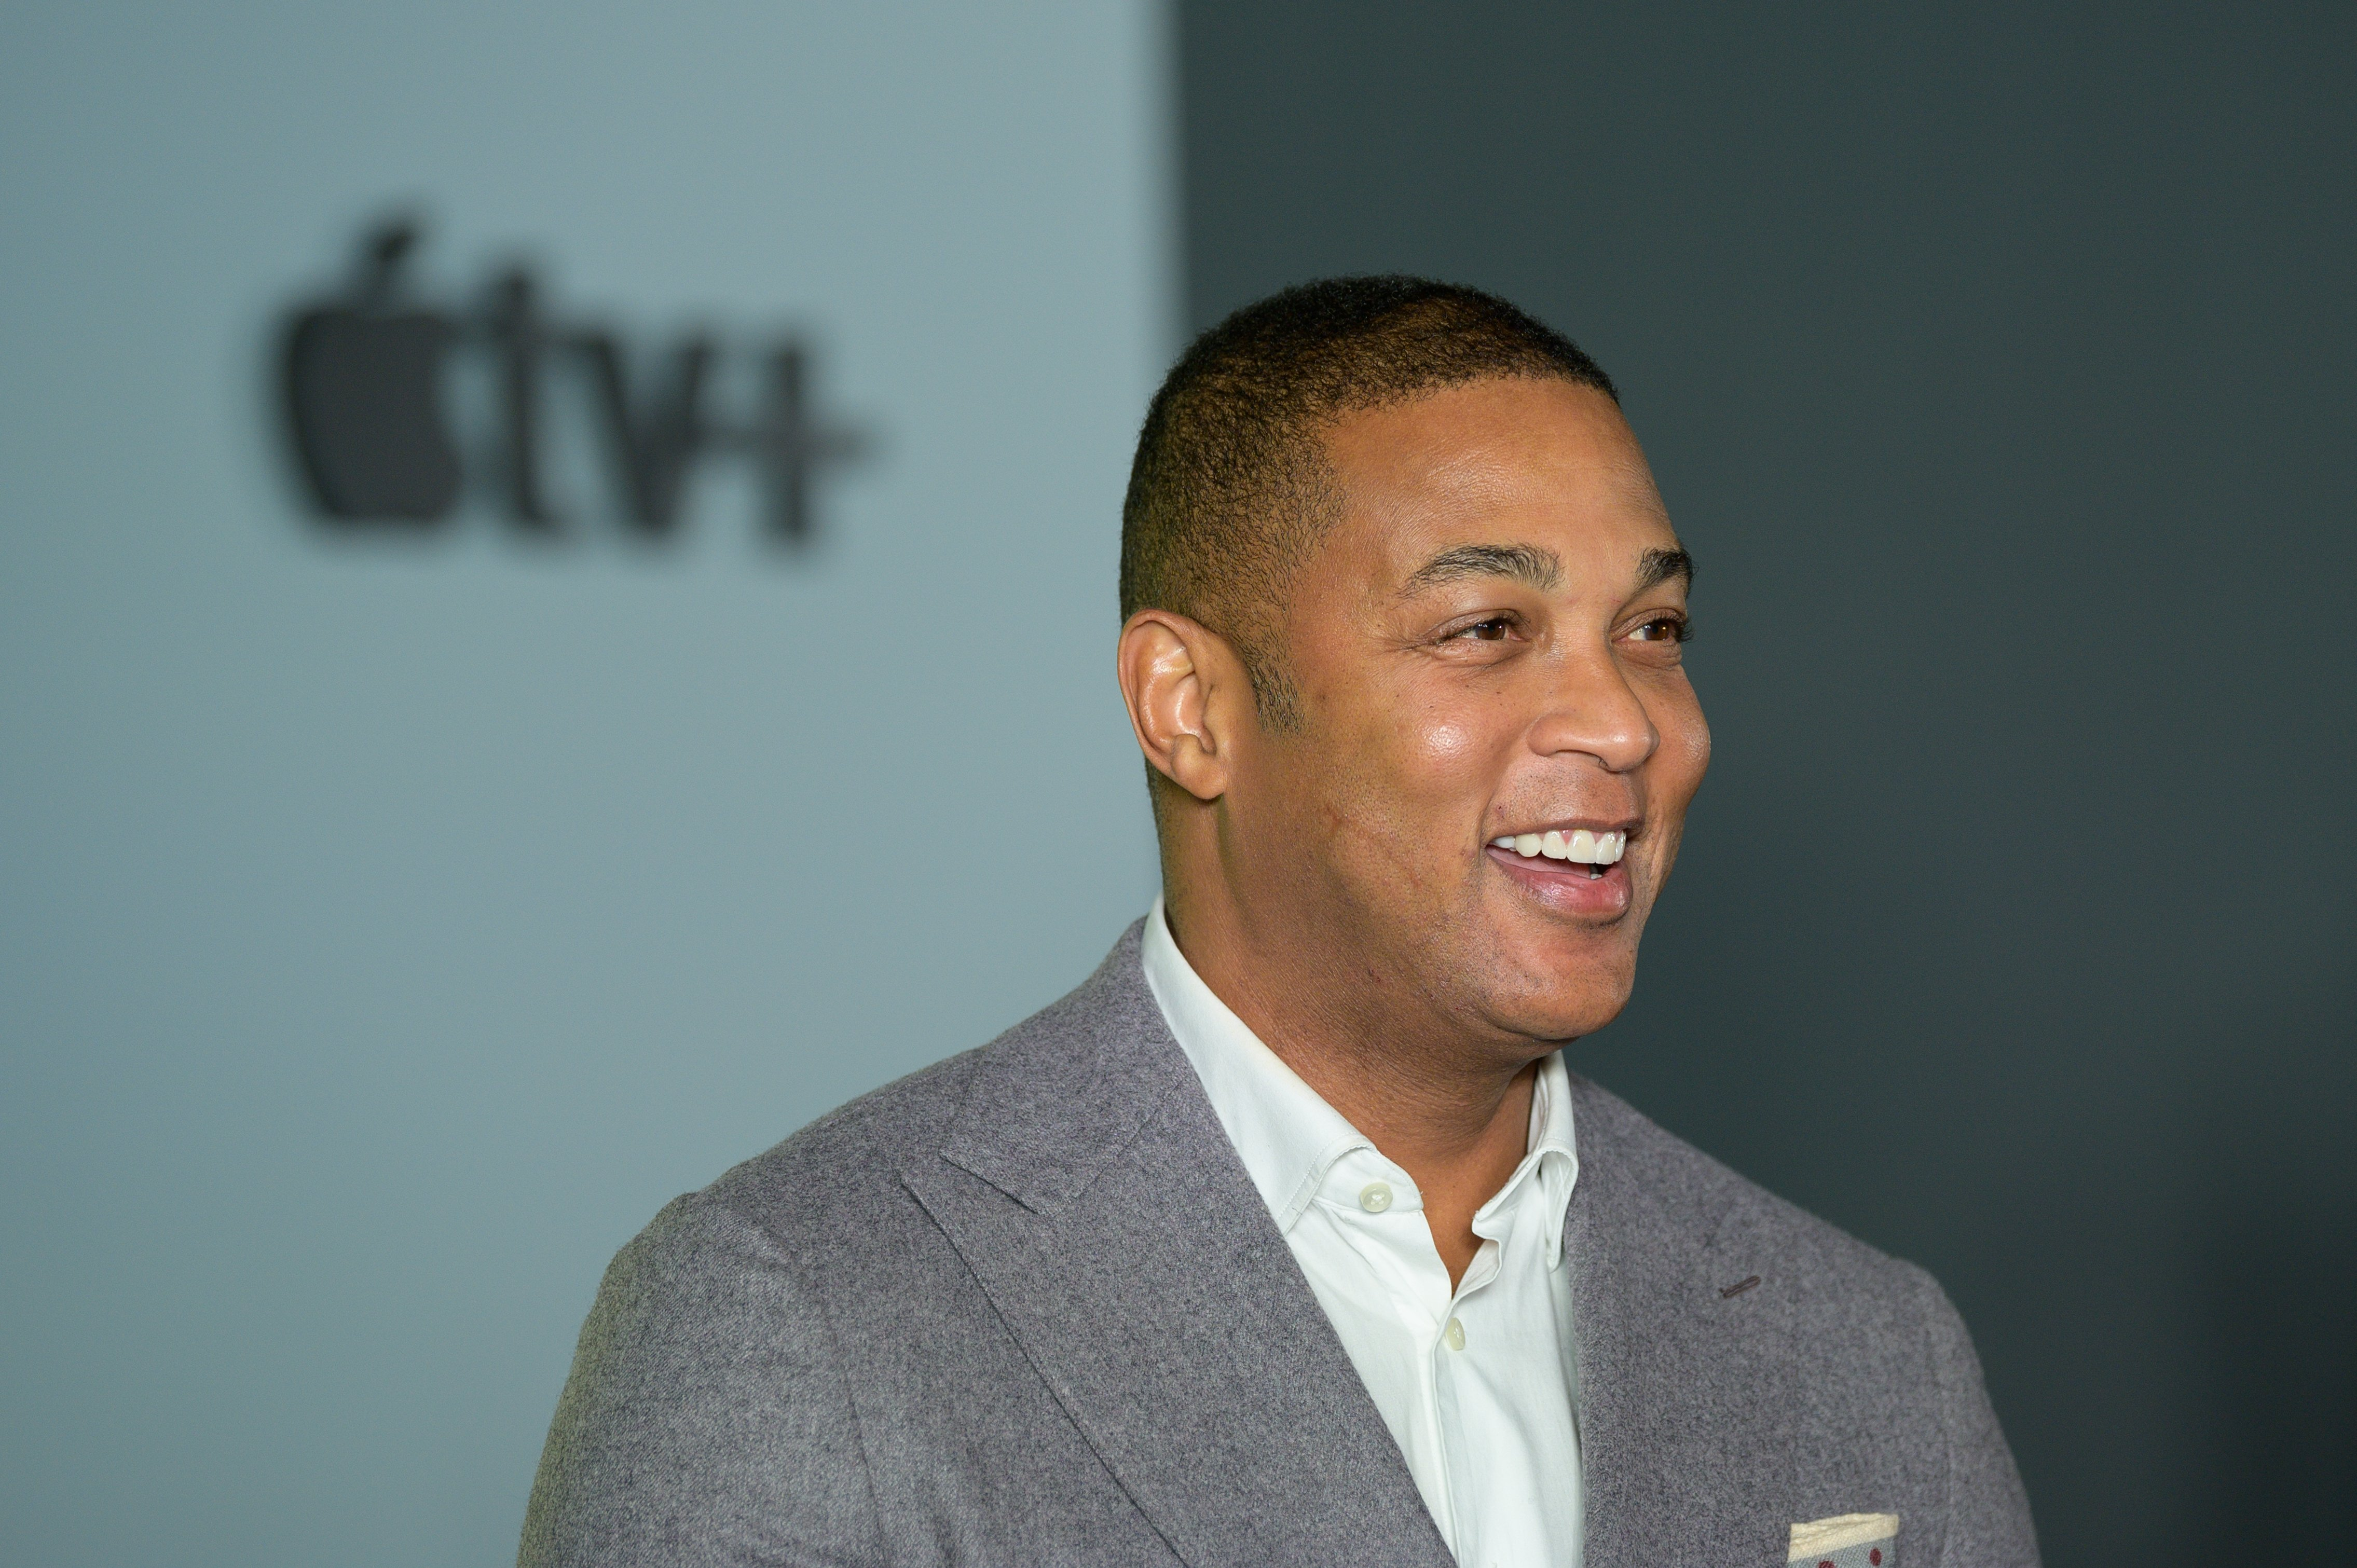 """Don Lemon at Apple TV+'s """"The Morning Show"""" world premiere on October 28, 2019 in New York City. 